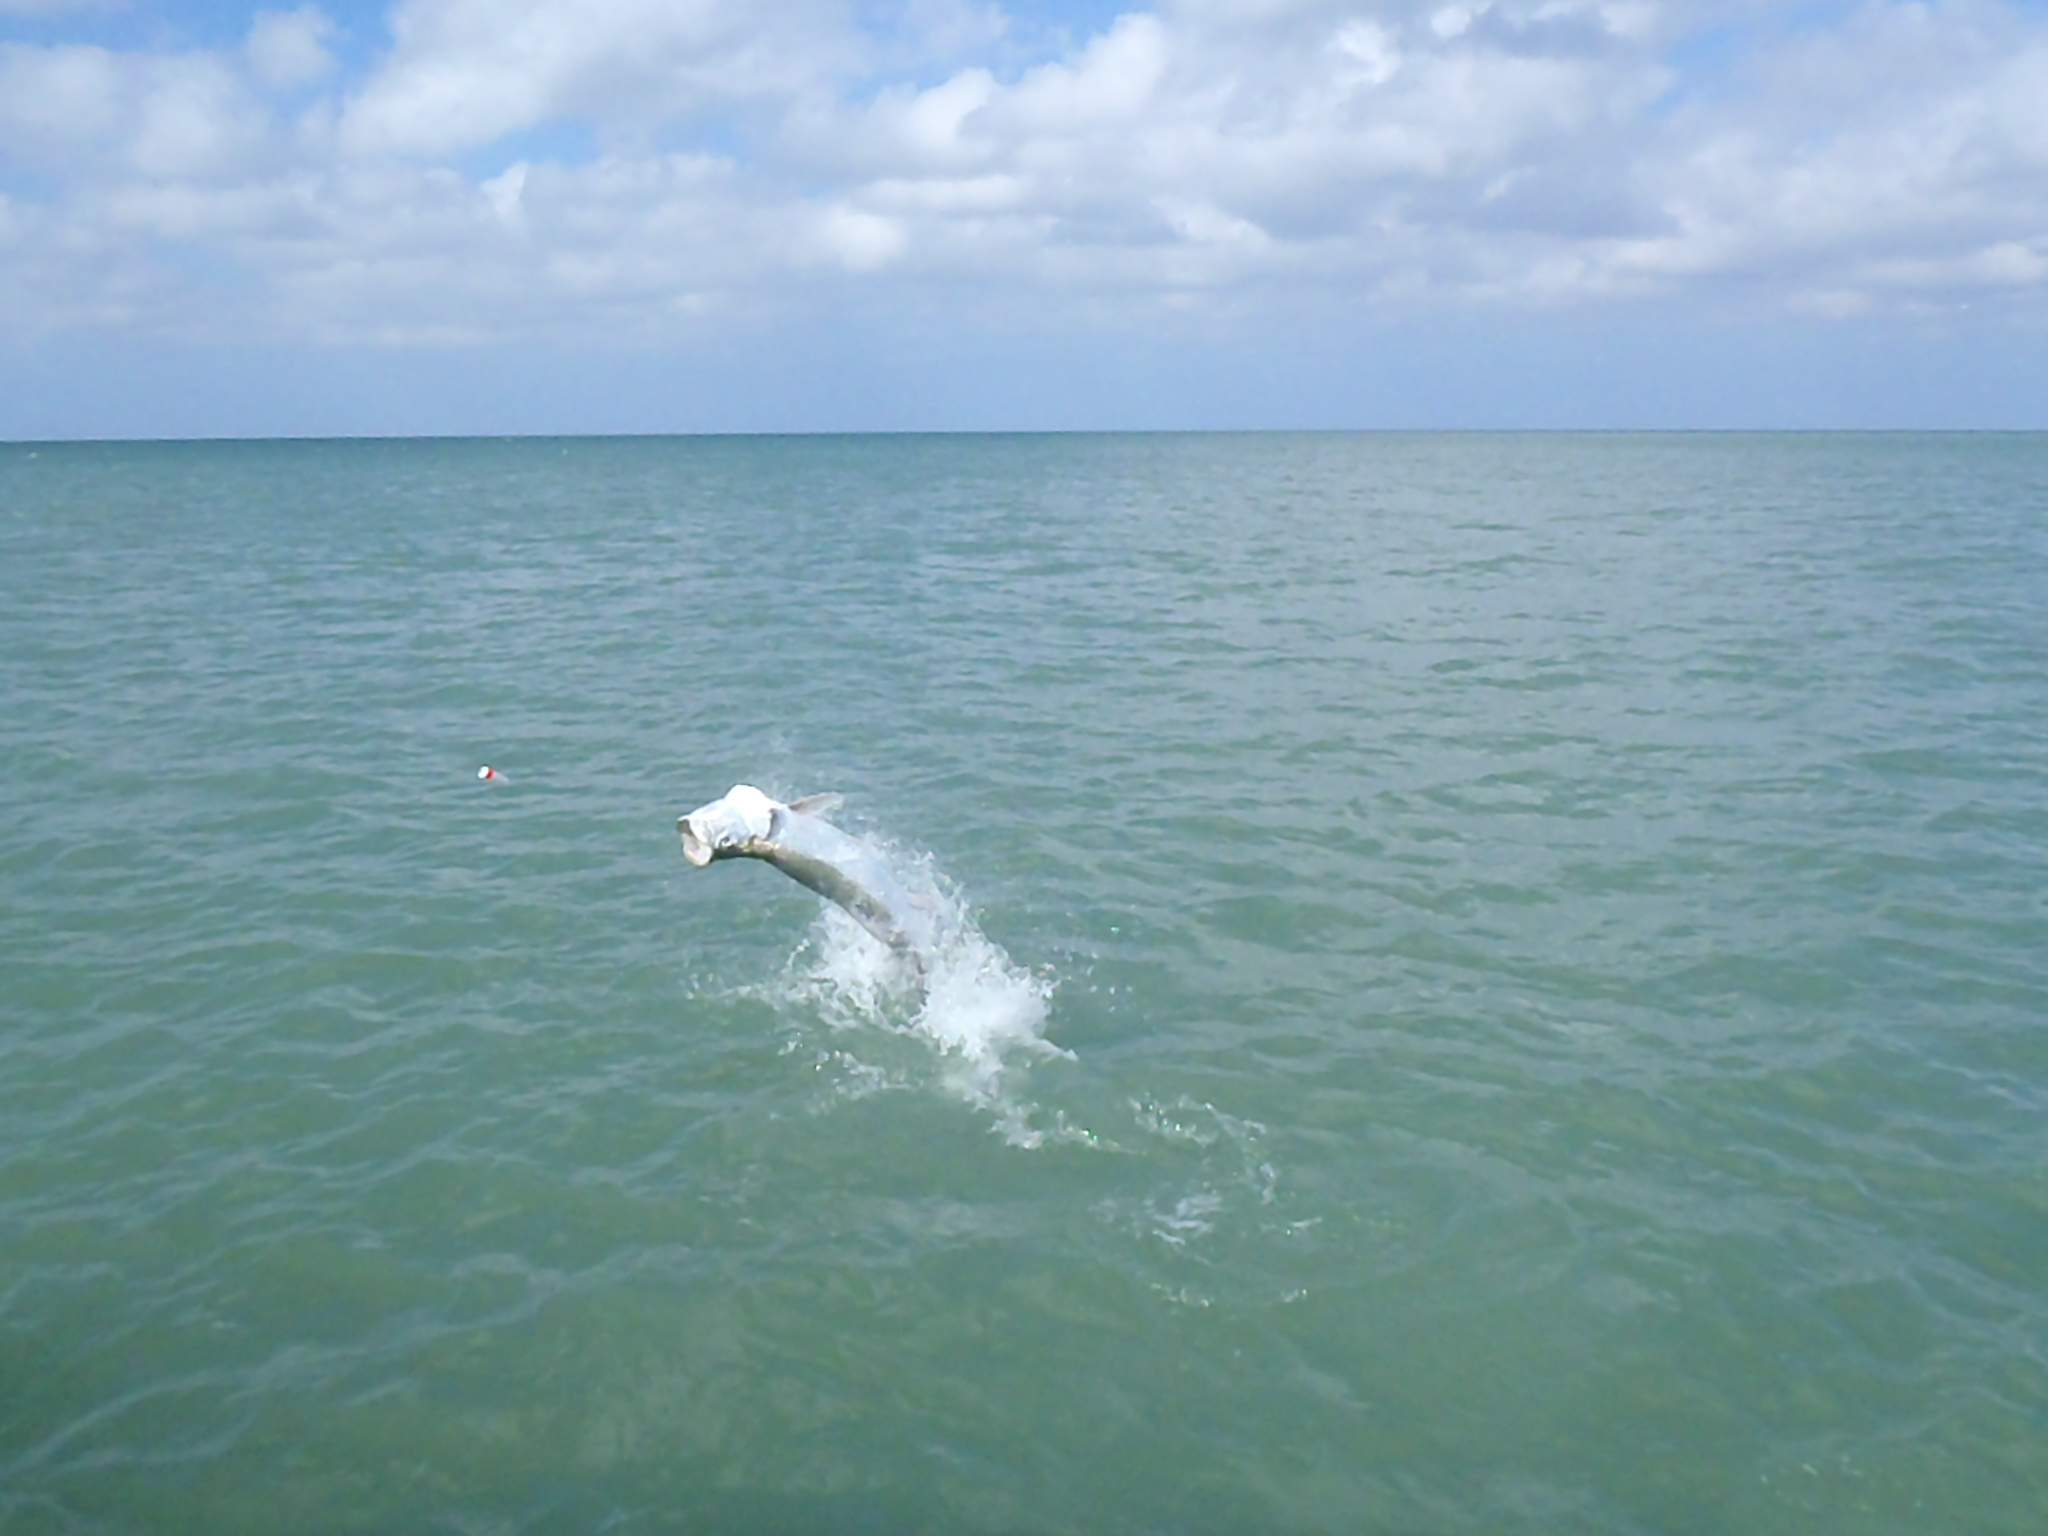 Tarpon fishing naples fl fishing guide captain tony for Florida tarpon fishing